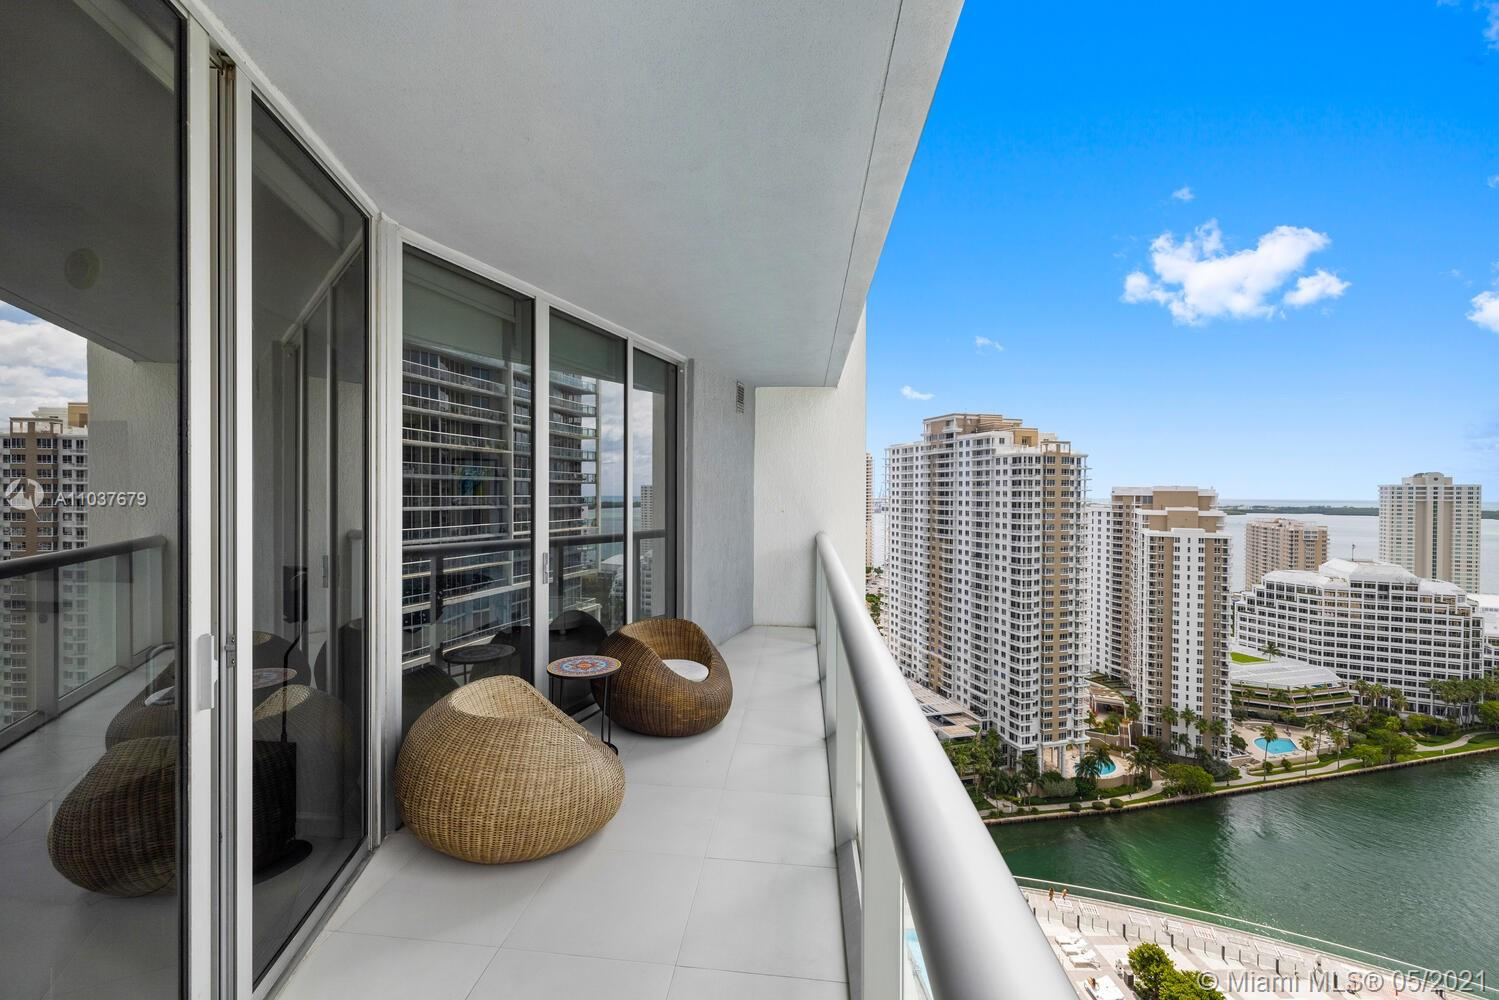 Icon Brickell 1 #2611 - 475 BRICKELL AVE #2611, Miami, FL 33131